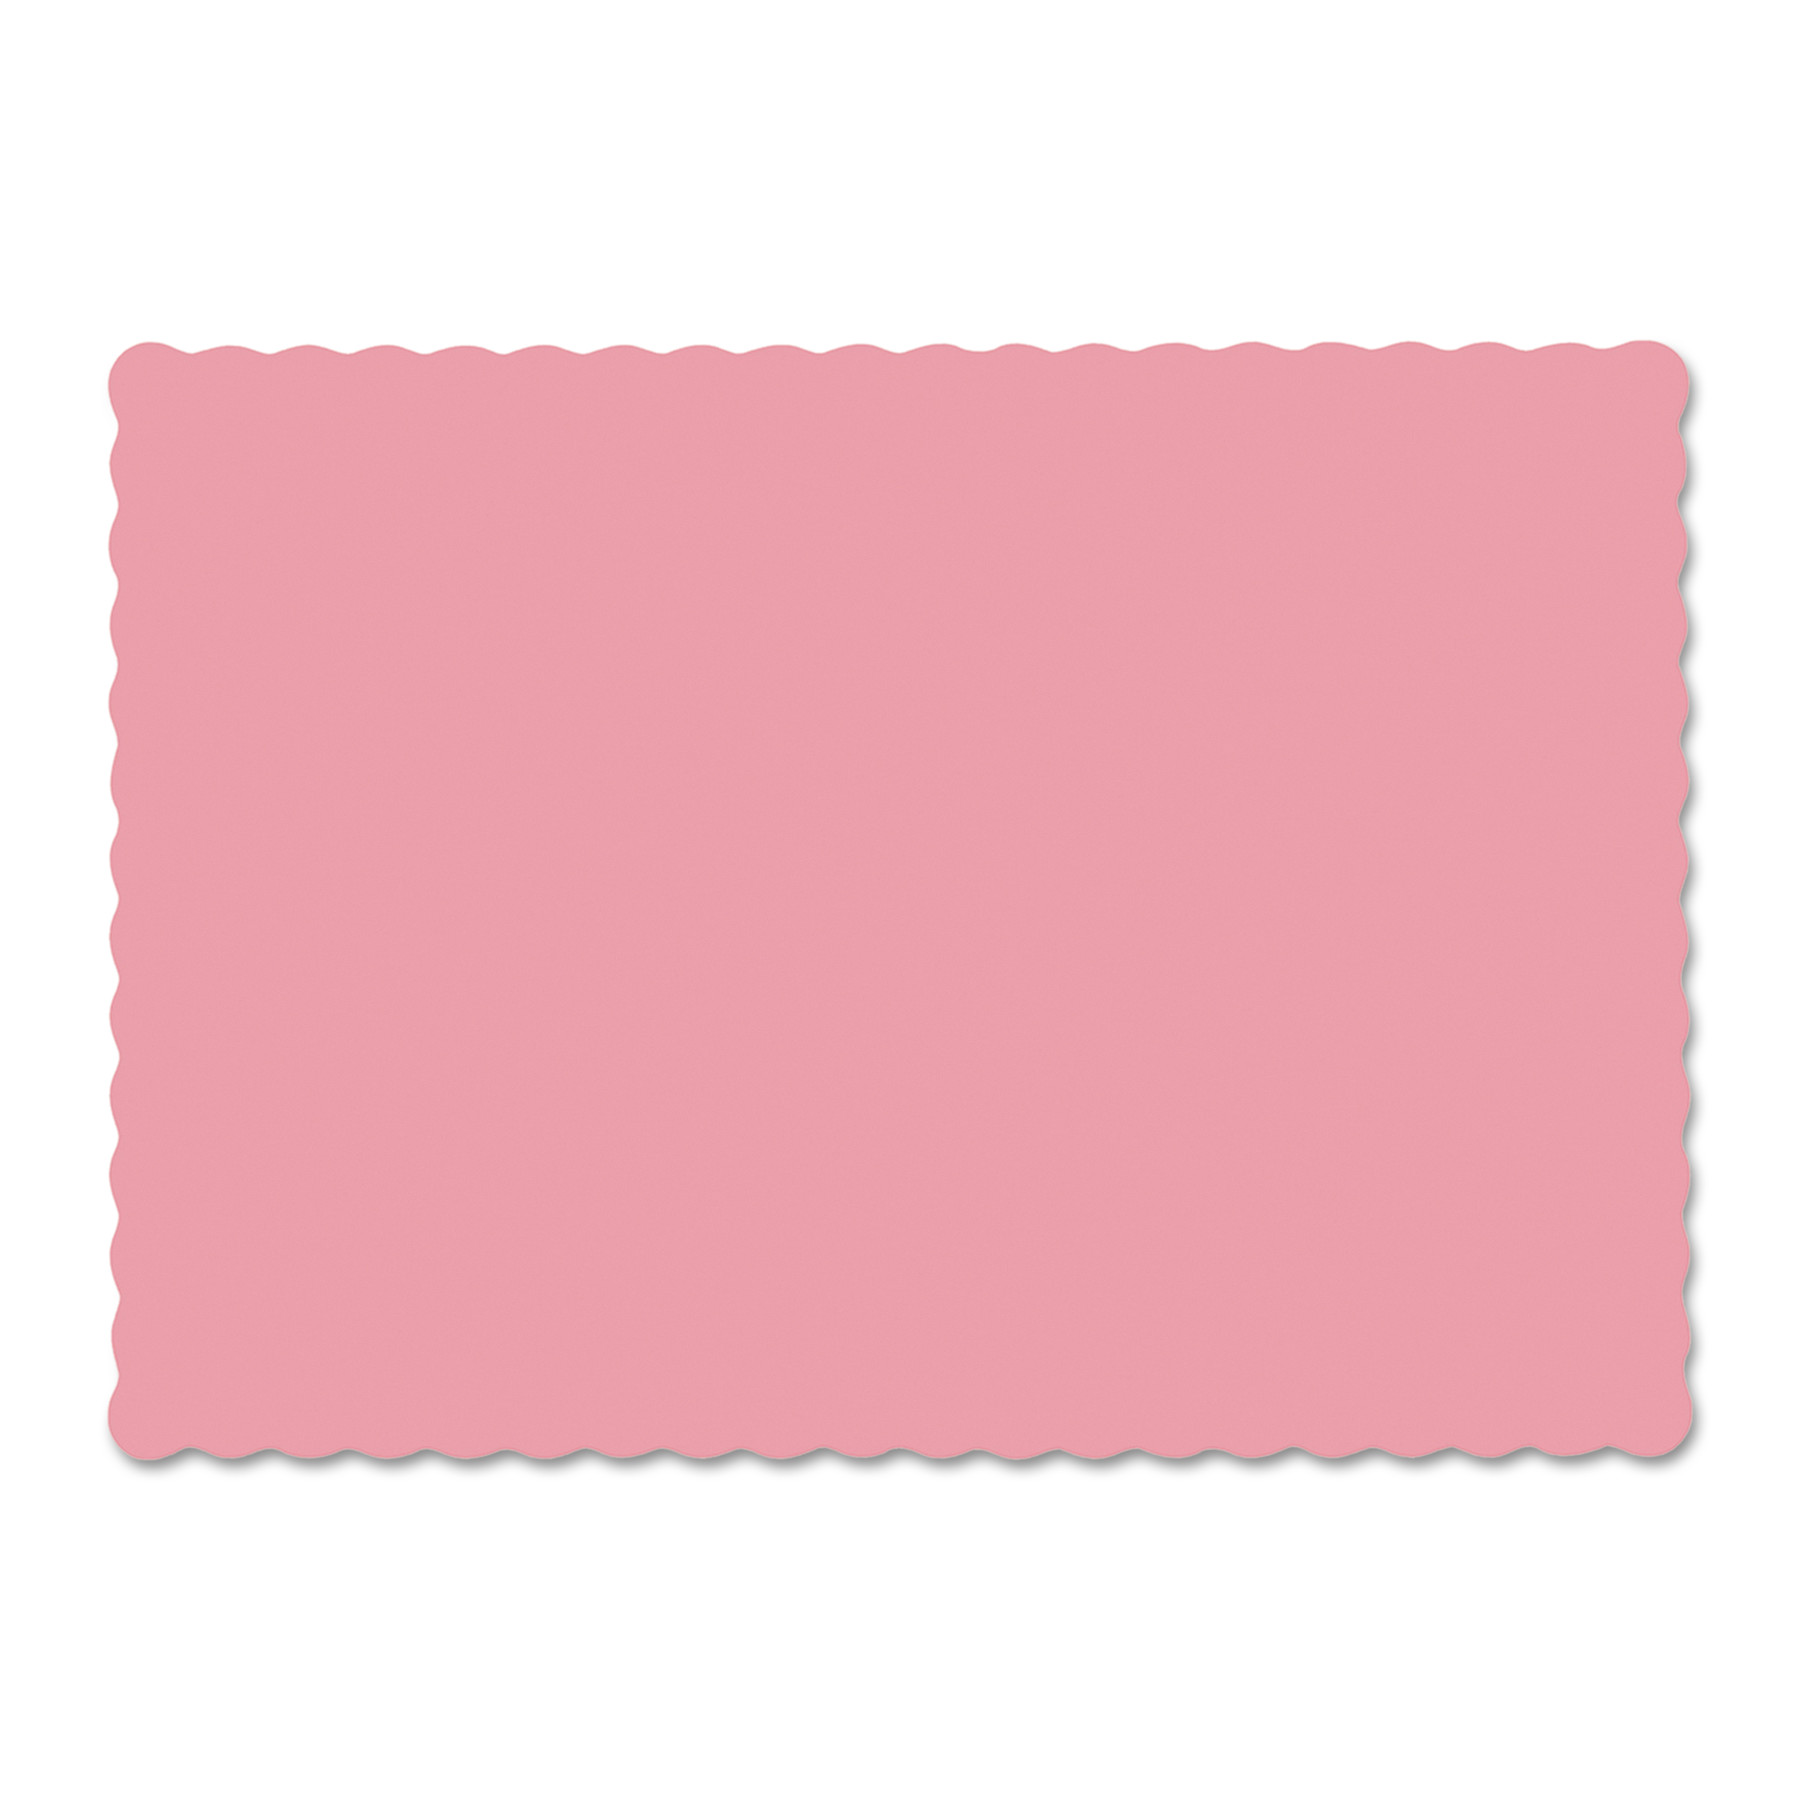 Hoffmaster Dusty Rose Solid Color Scalloped Edge Placemats, 1000 count by Hoffmaster